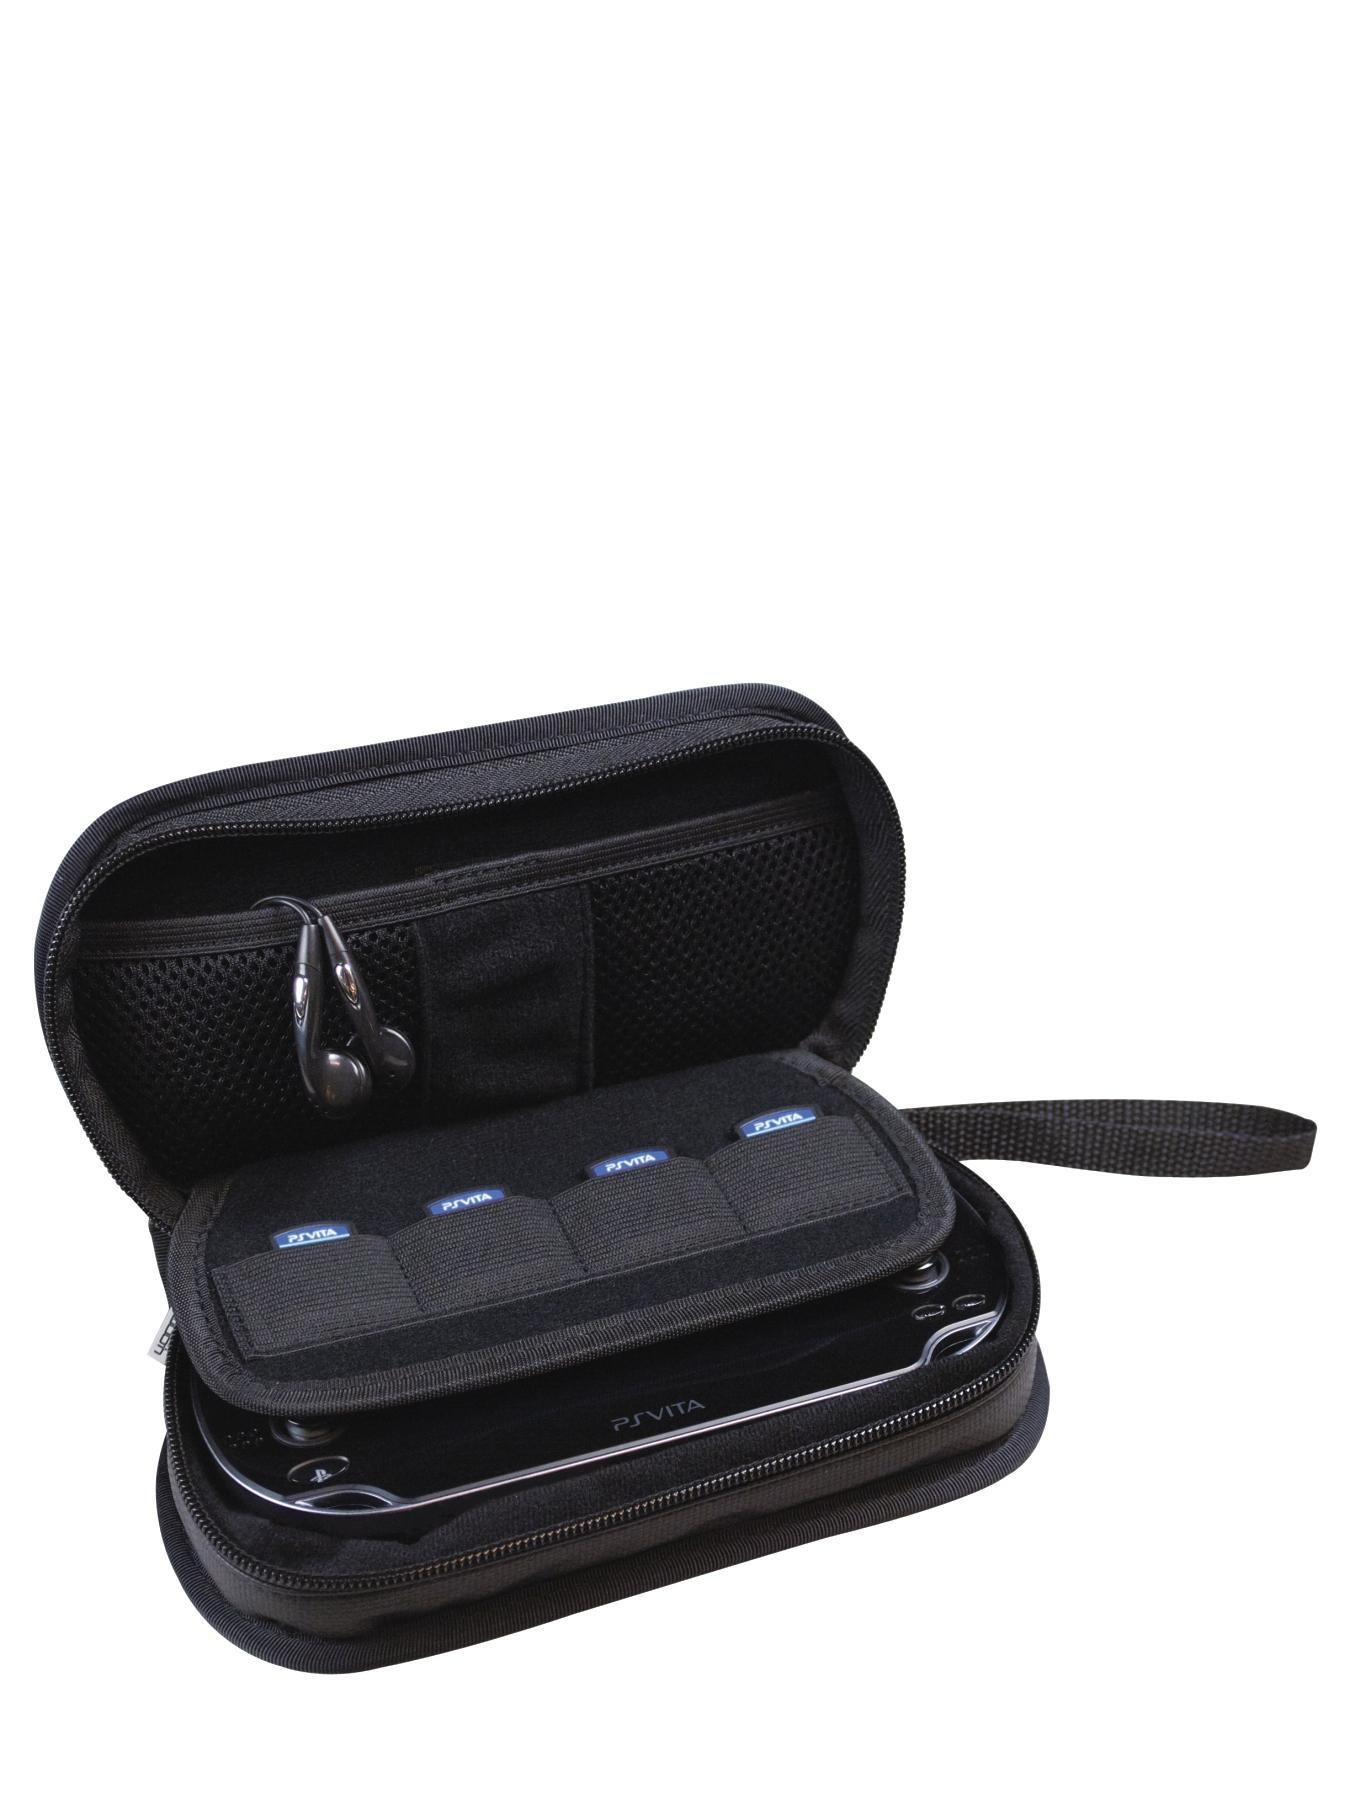 PS Vita A4T Travel Case - Black